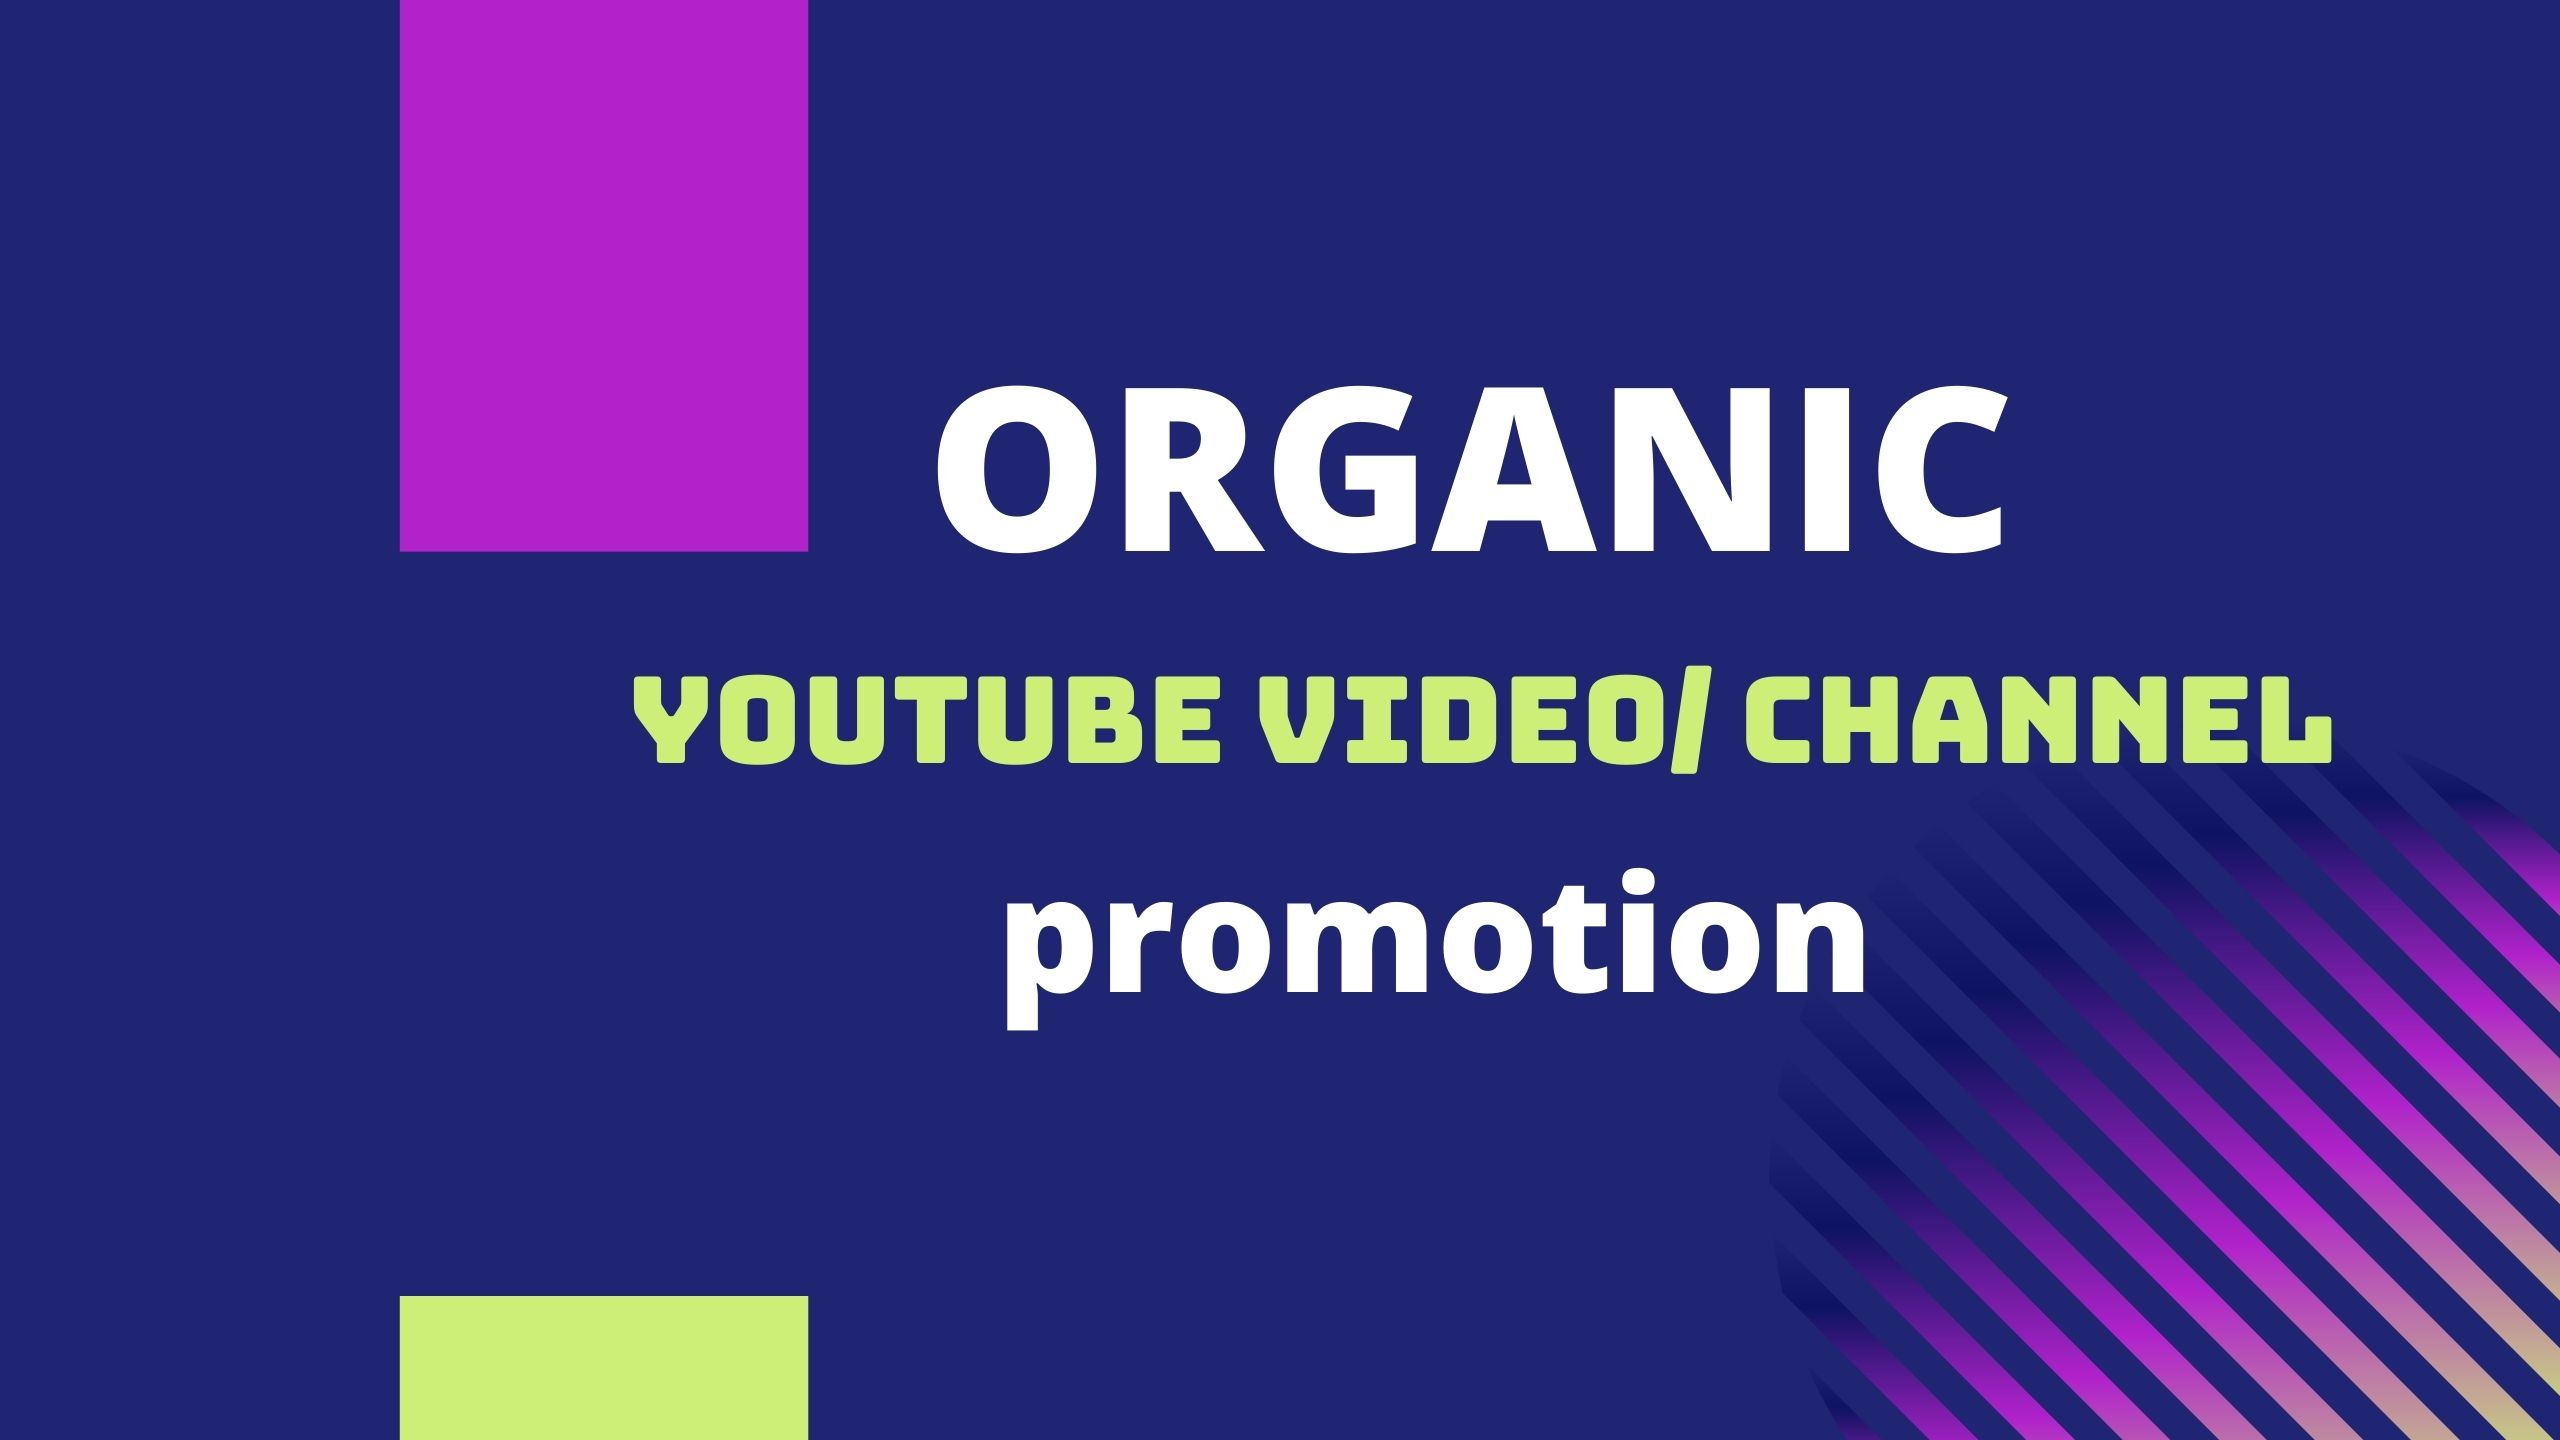 Organic Youtube video promotion and Marketing to grow more Audience